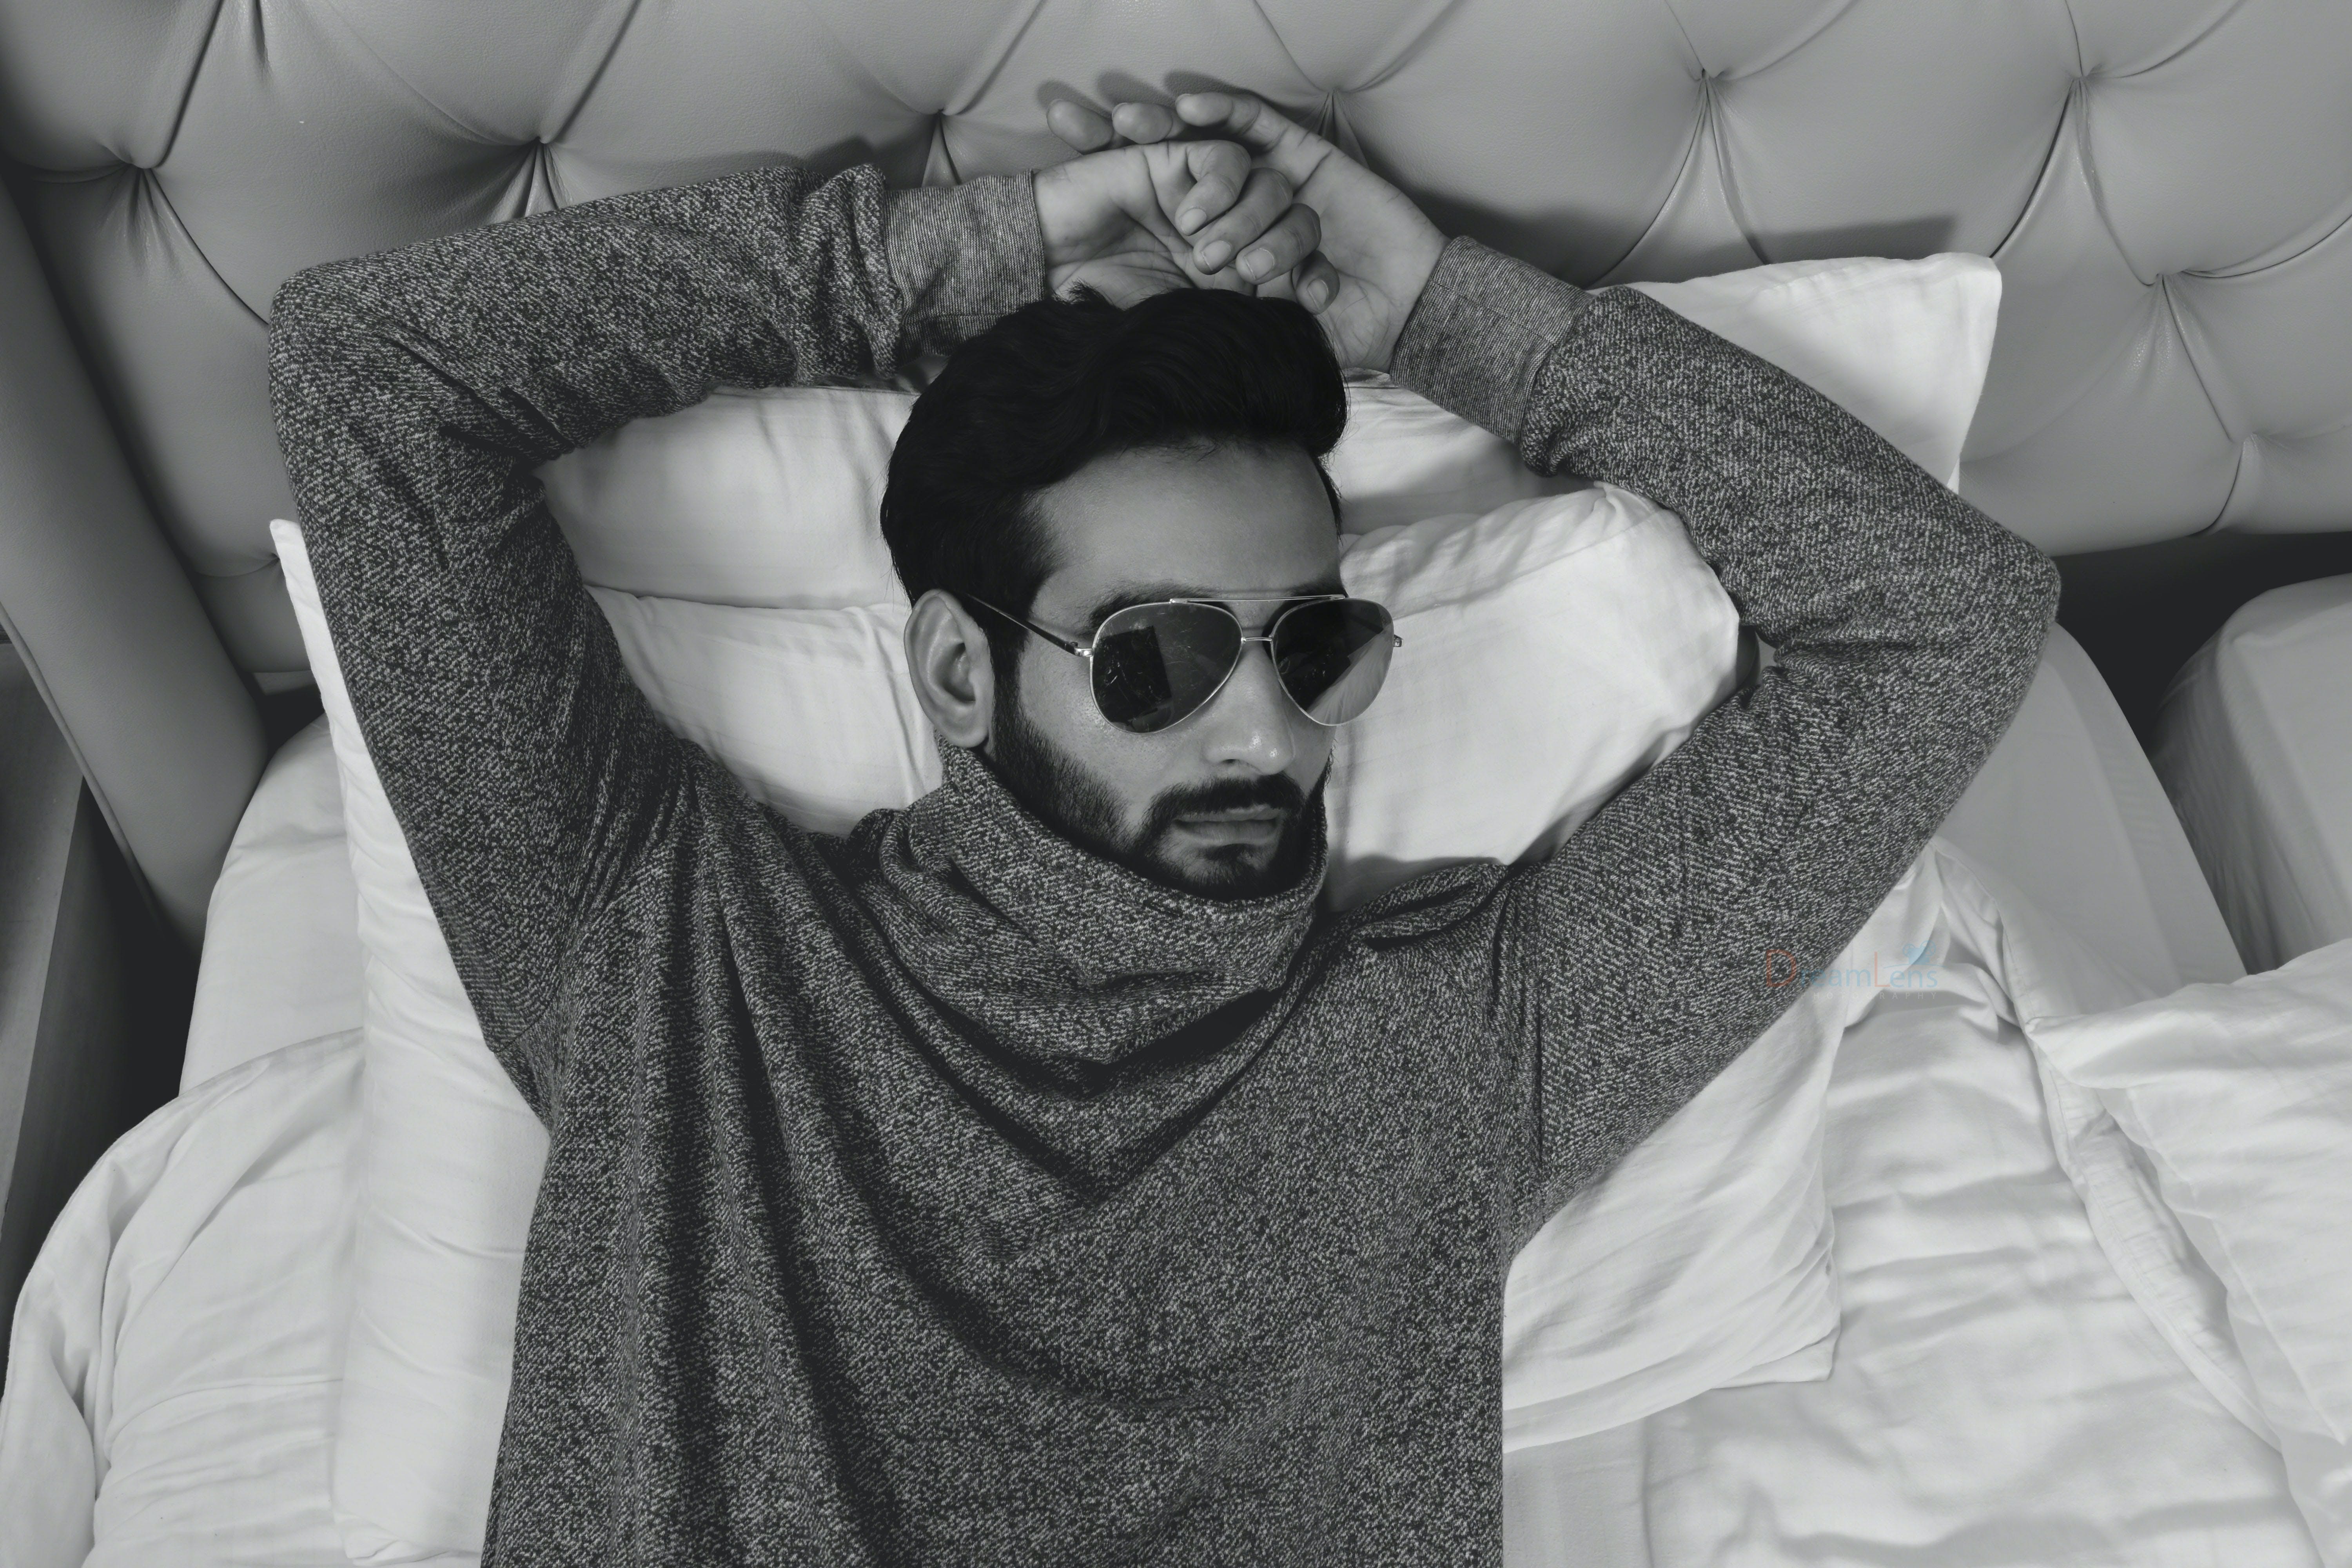 Grayscale Photo of Man in Long-sleeved Wearing Sunglasses Lying on Bed With Both Hand on Head